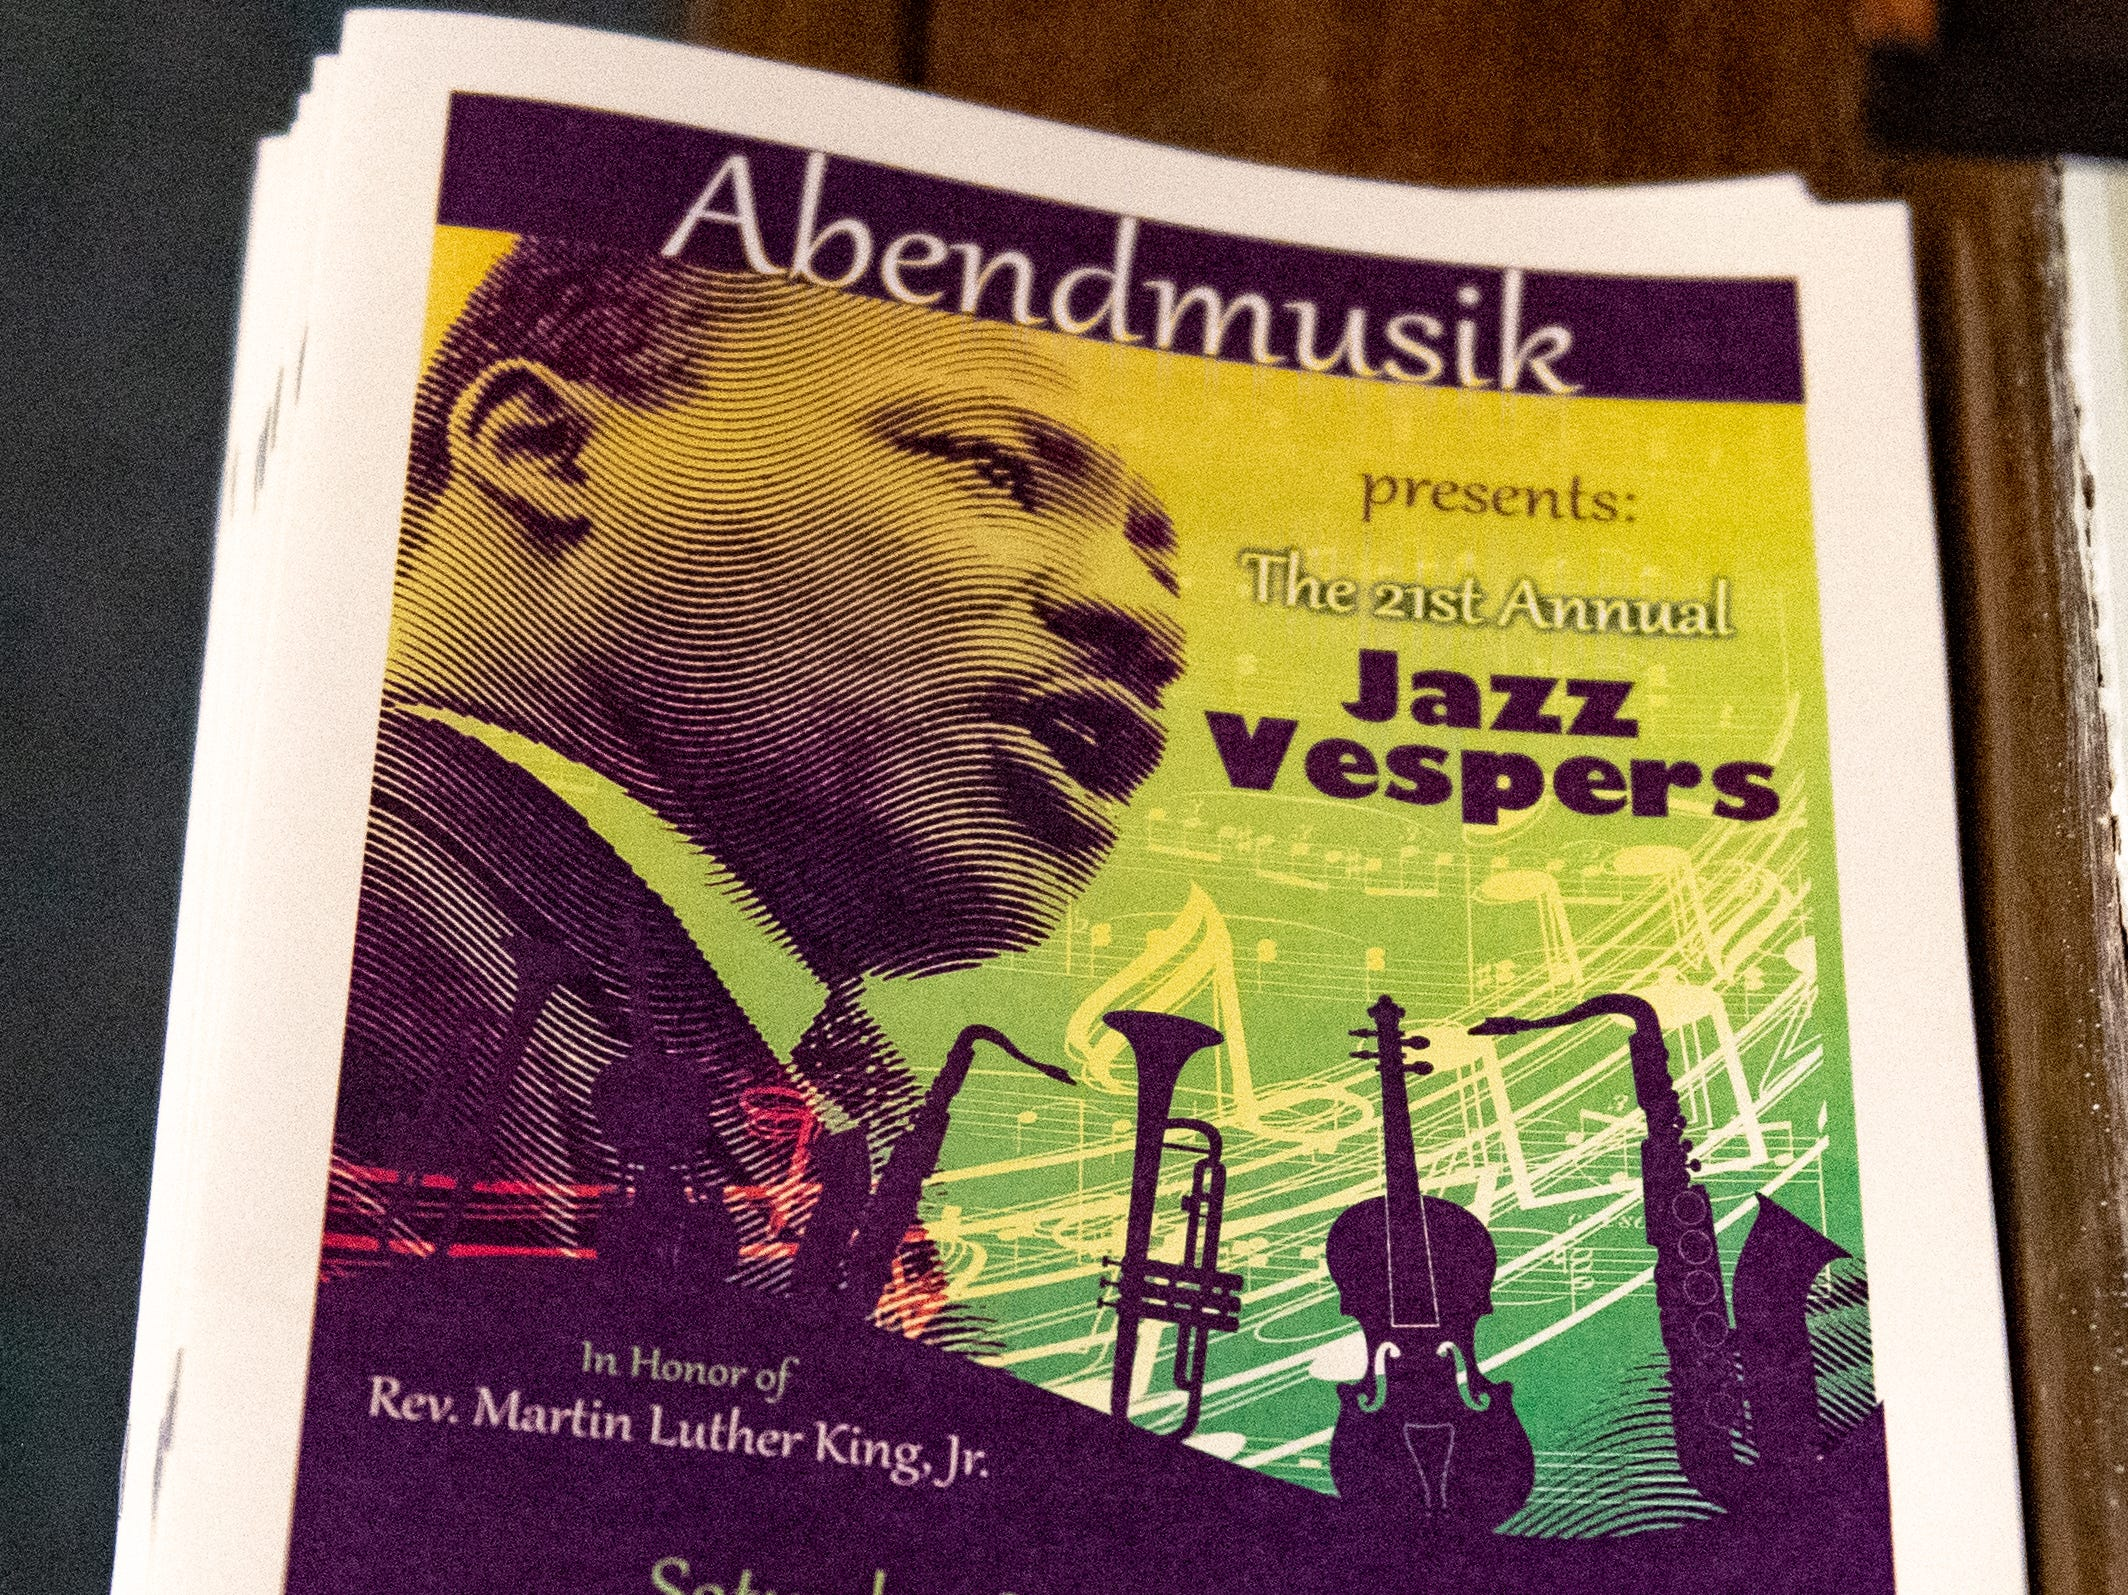 Each guest receives a detailed program that lists the band members and lyrics to songs so the crowd can sing along  during the 21st annual Jazz Vespers concert at First Presbyterian Church in York, January 12, 2019.